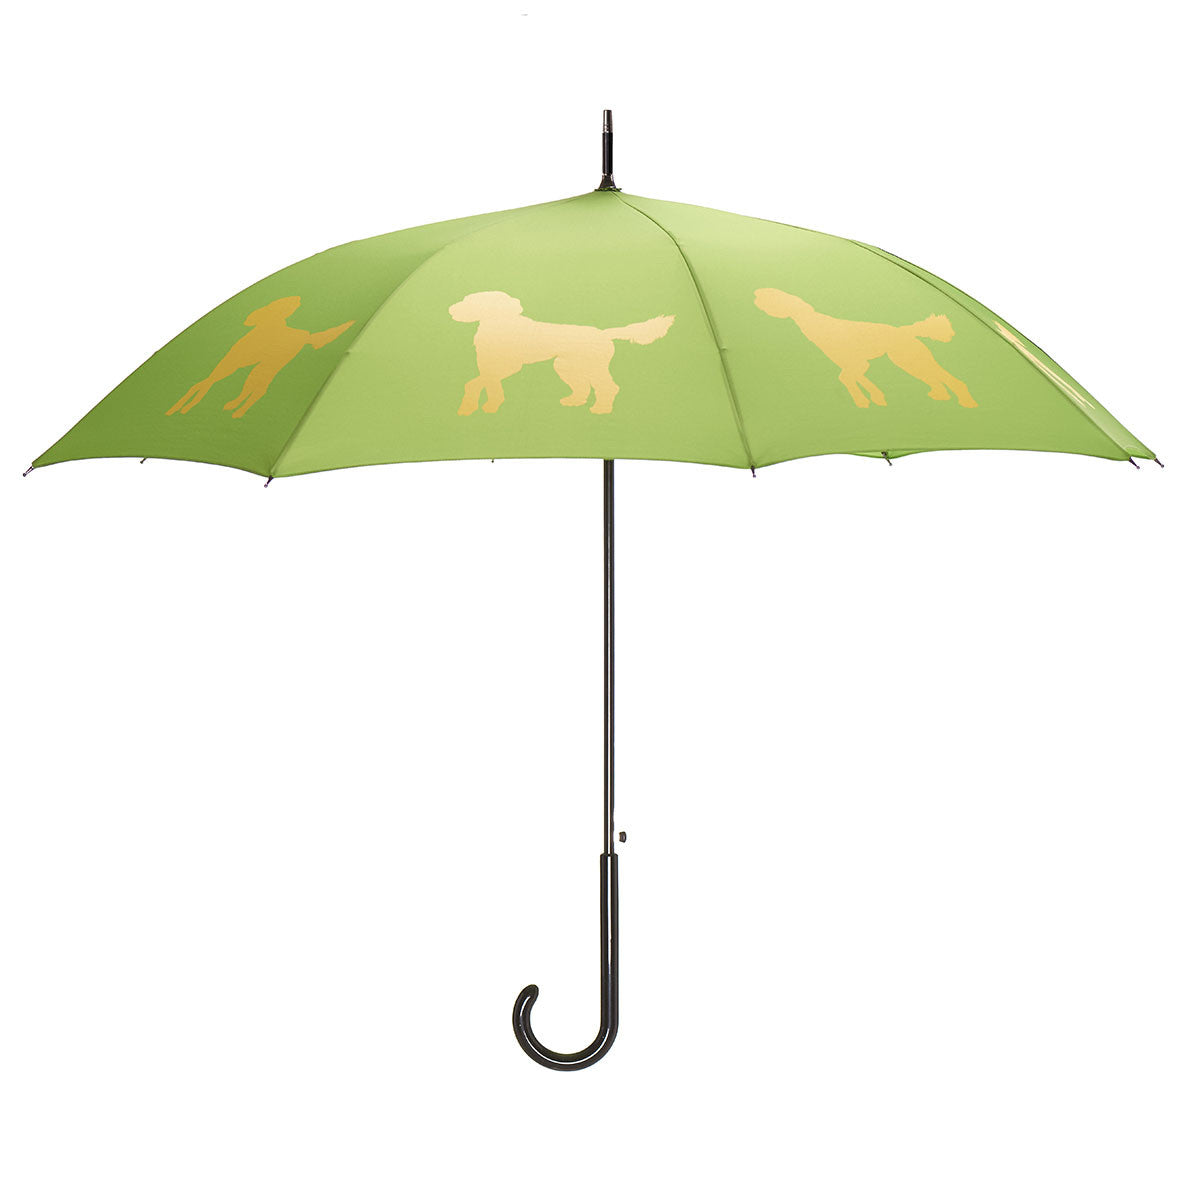 Doodle Umbrella Auto Open Premium Quality Yellow on Green w/ sleeve and shoulder strap